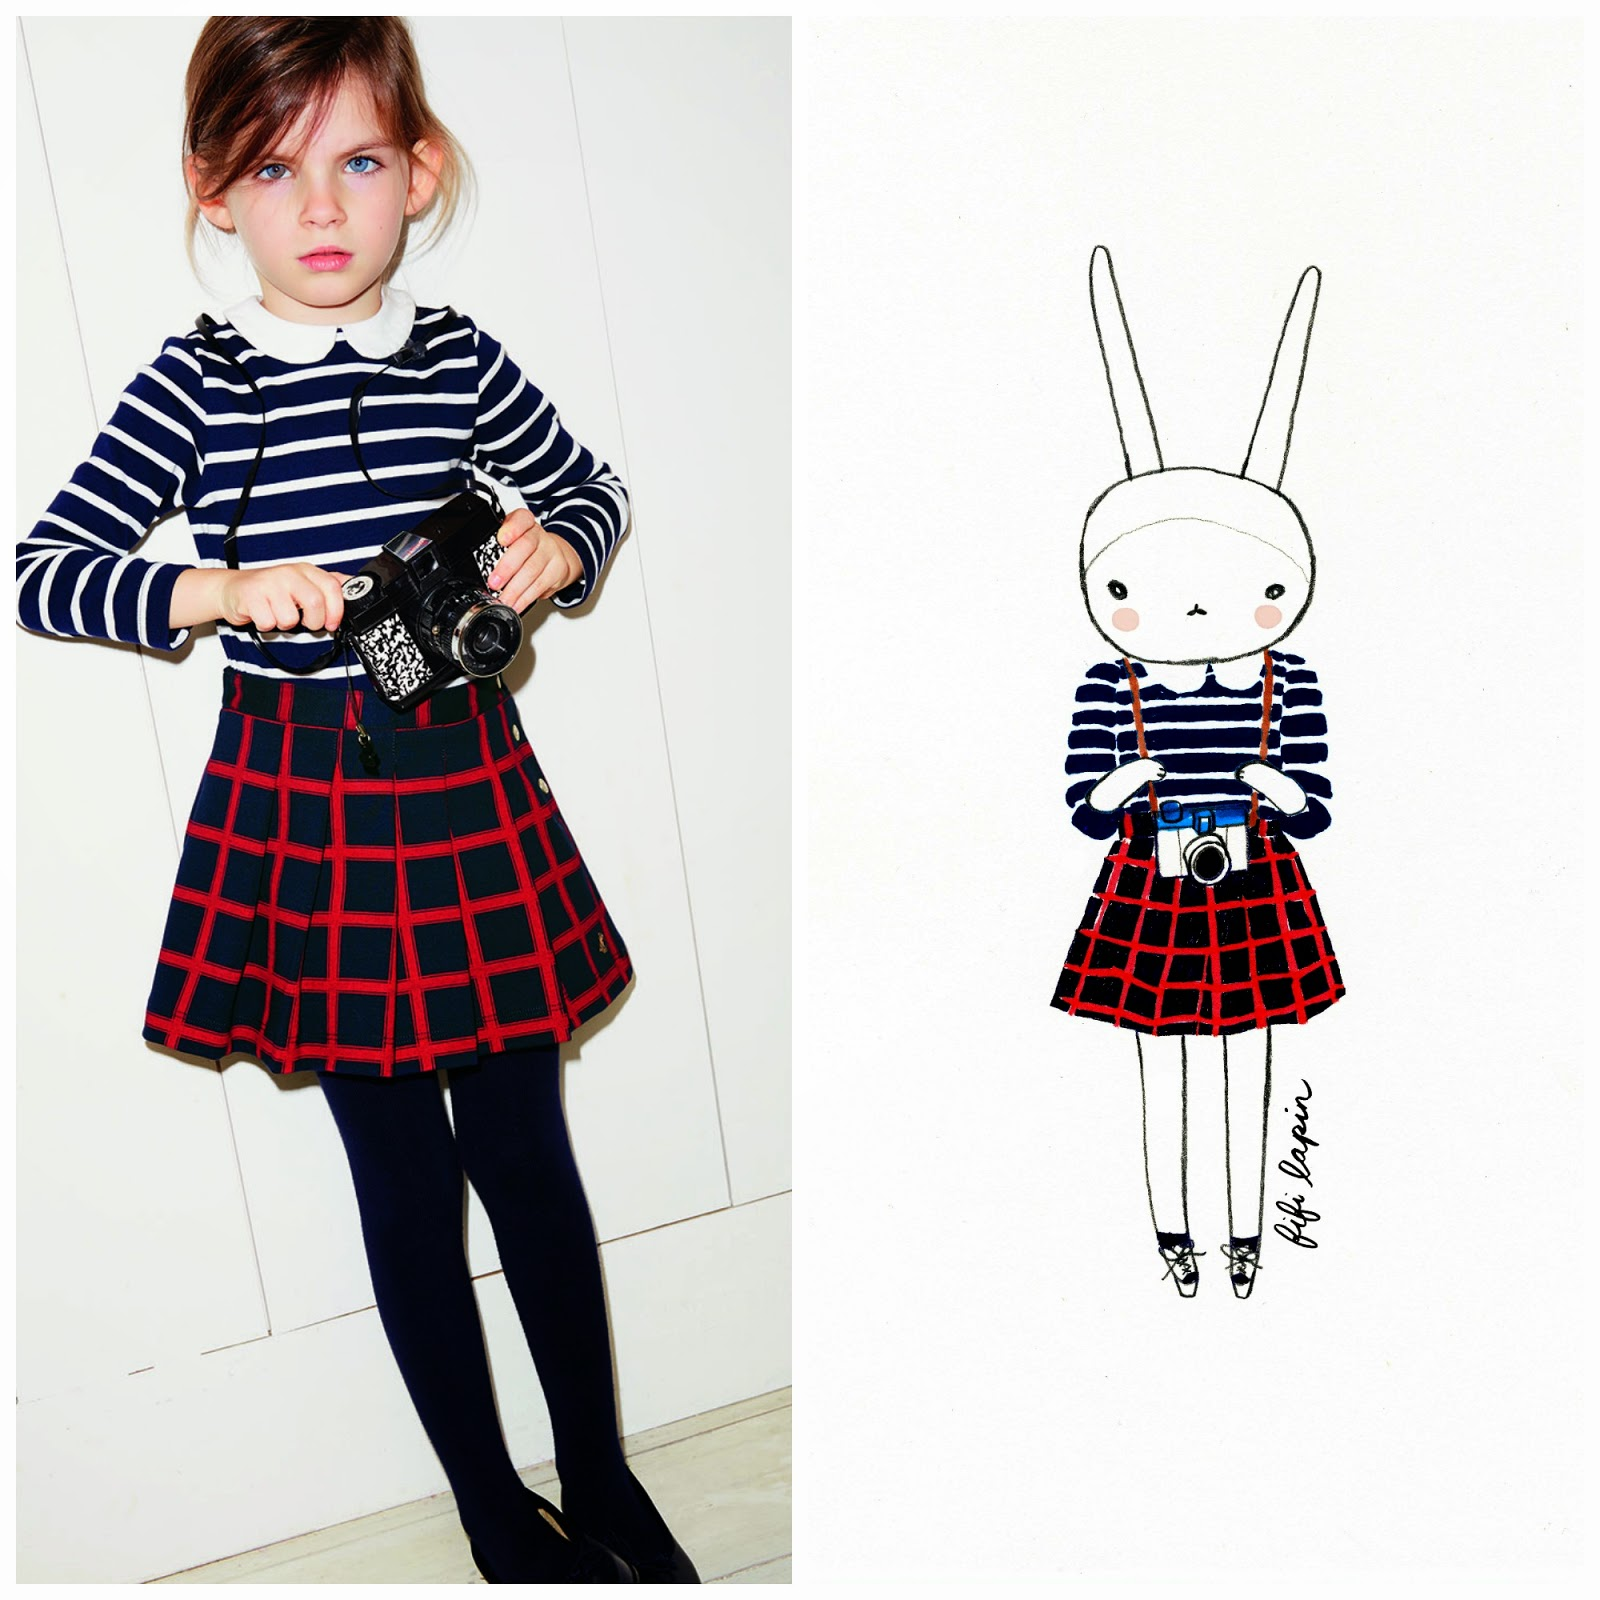 Fifi Lapin - the coolest bunny in town collaborates with Petit Bateau   fit lapin   blogger   bunny   fashion blogger   illustrated   petit bateau   stripe top   t-shirt collection   what shall i wear today  exclusive t-shirts   rabbit   frnech fashion   kids fashion   tees for women   new collection   new launch   mamasVIB   petit bateau shitrts   blogger collaboration   french style   bloggers  